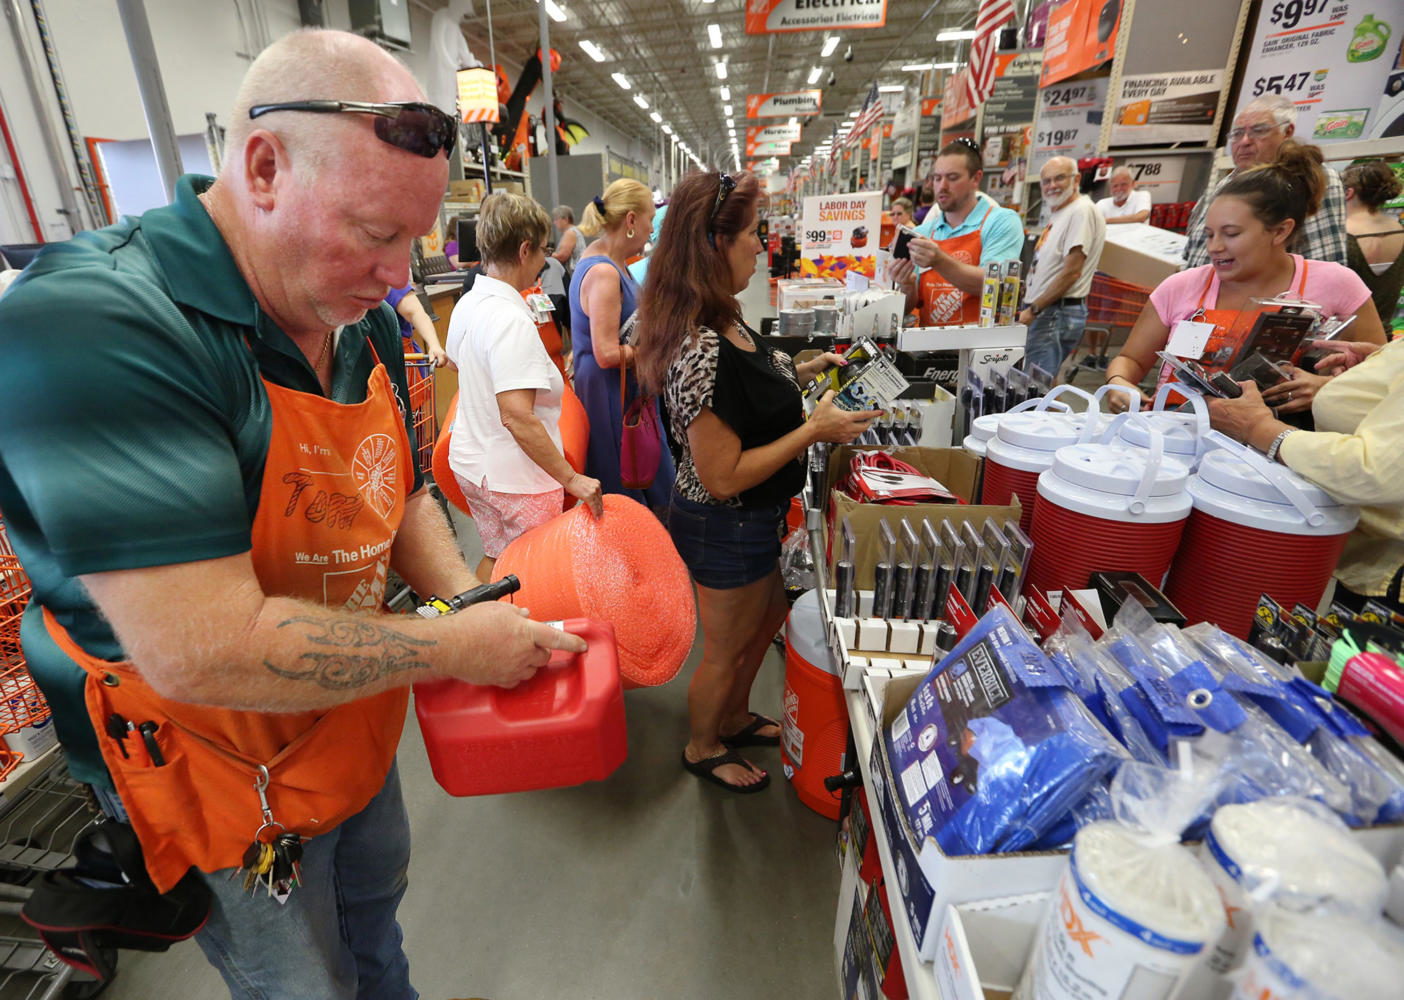 Tom Kepner, left, stocks gas containers as shoppers buy hurricane items at The Home Depot in Lady Lake on Tuesday afternoon, Sept. 5, 2017. Buyers are preparing for Hurricane Irma. The store was out of generators and water early Tuesday. (Stephen M. Dowell/Orlando Sentinel/TNS)